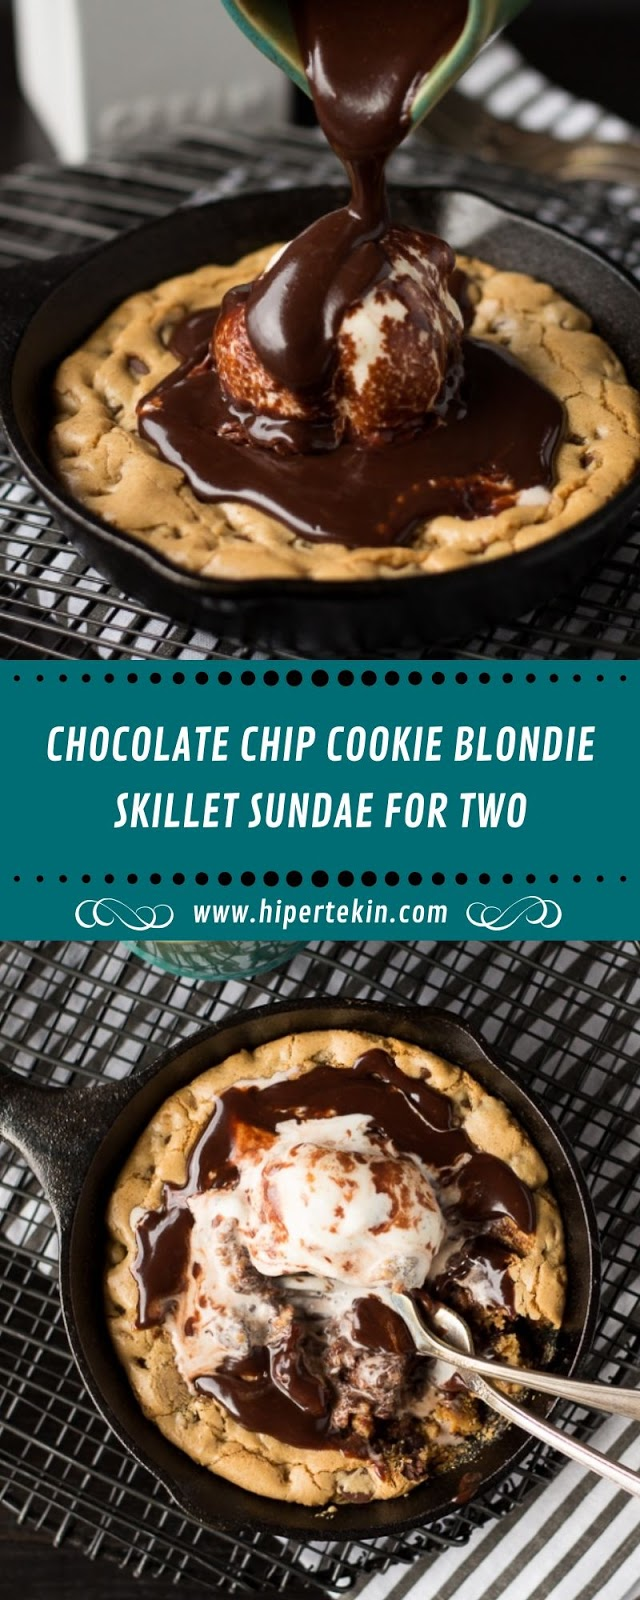 CHOCOLATE CHIP COOKIE BLONDIE SKILLET SUNDAE FOR TWO